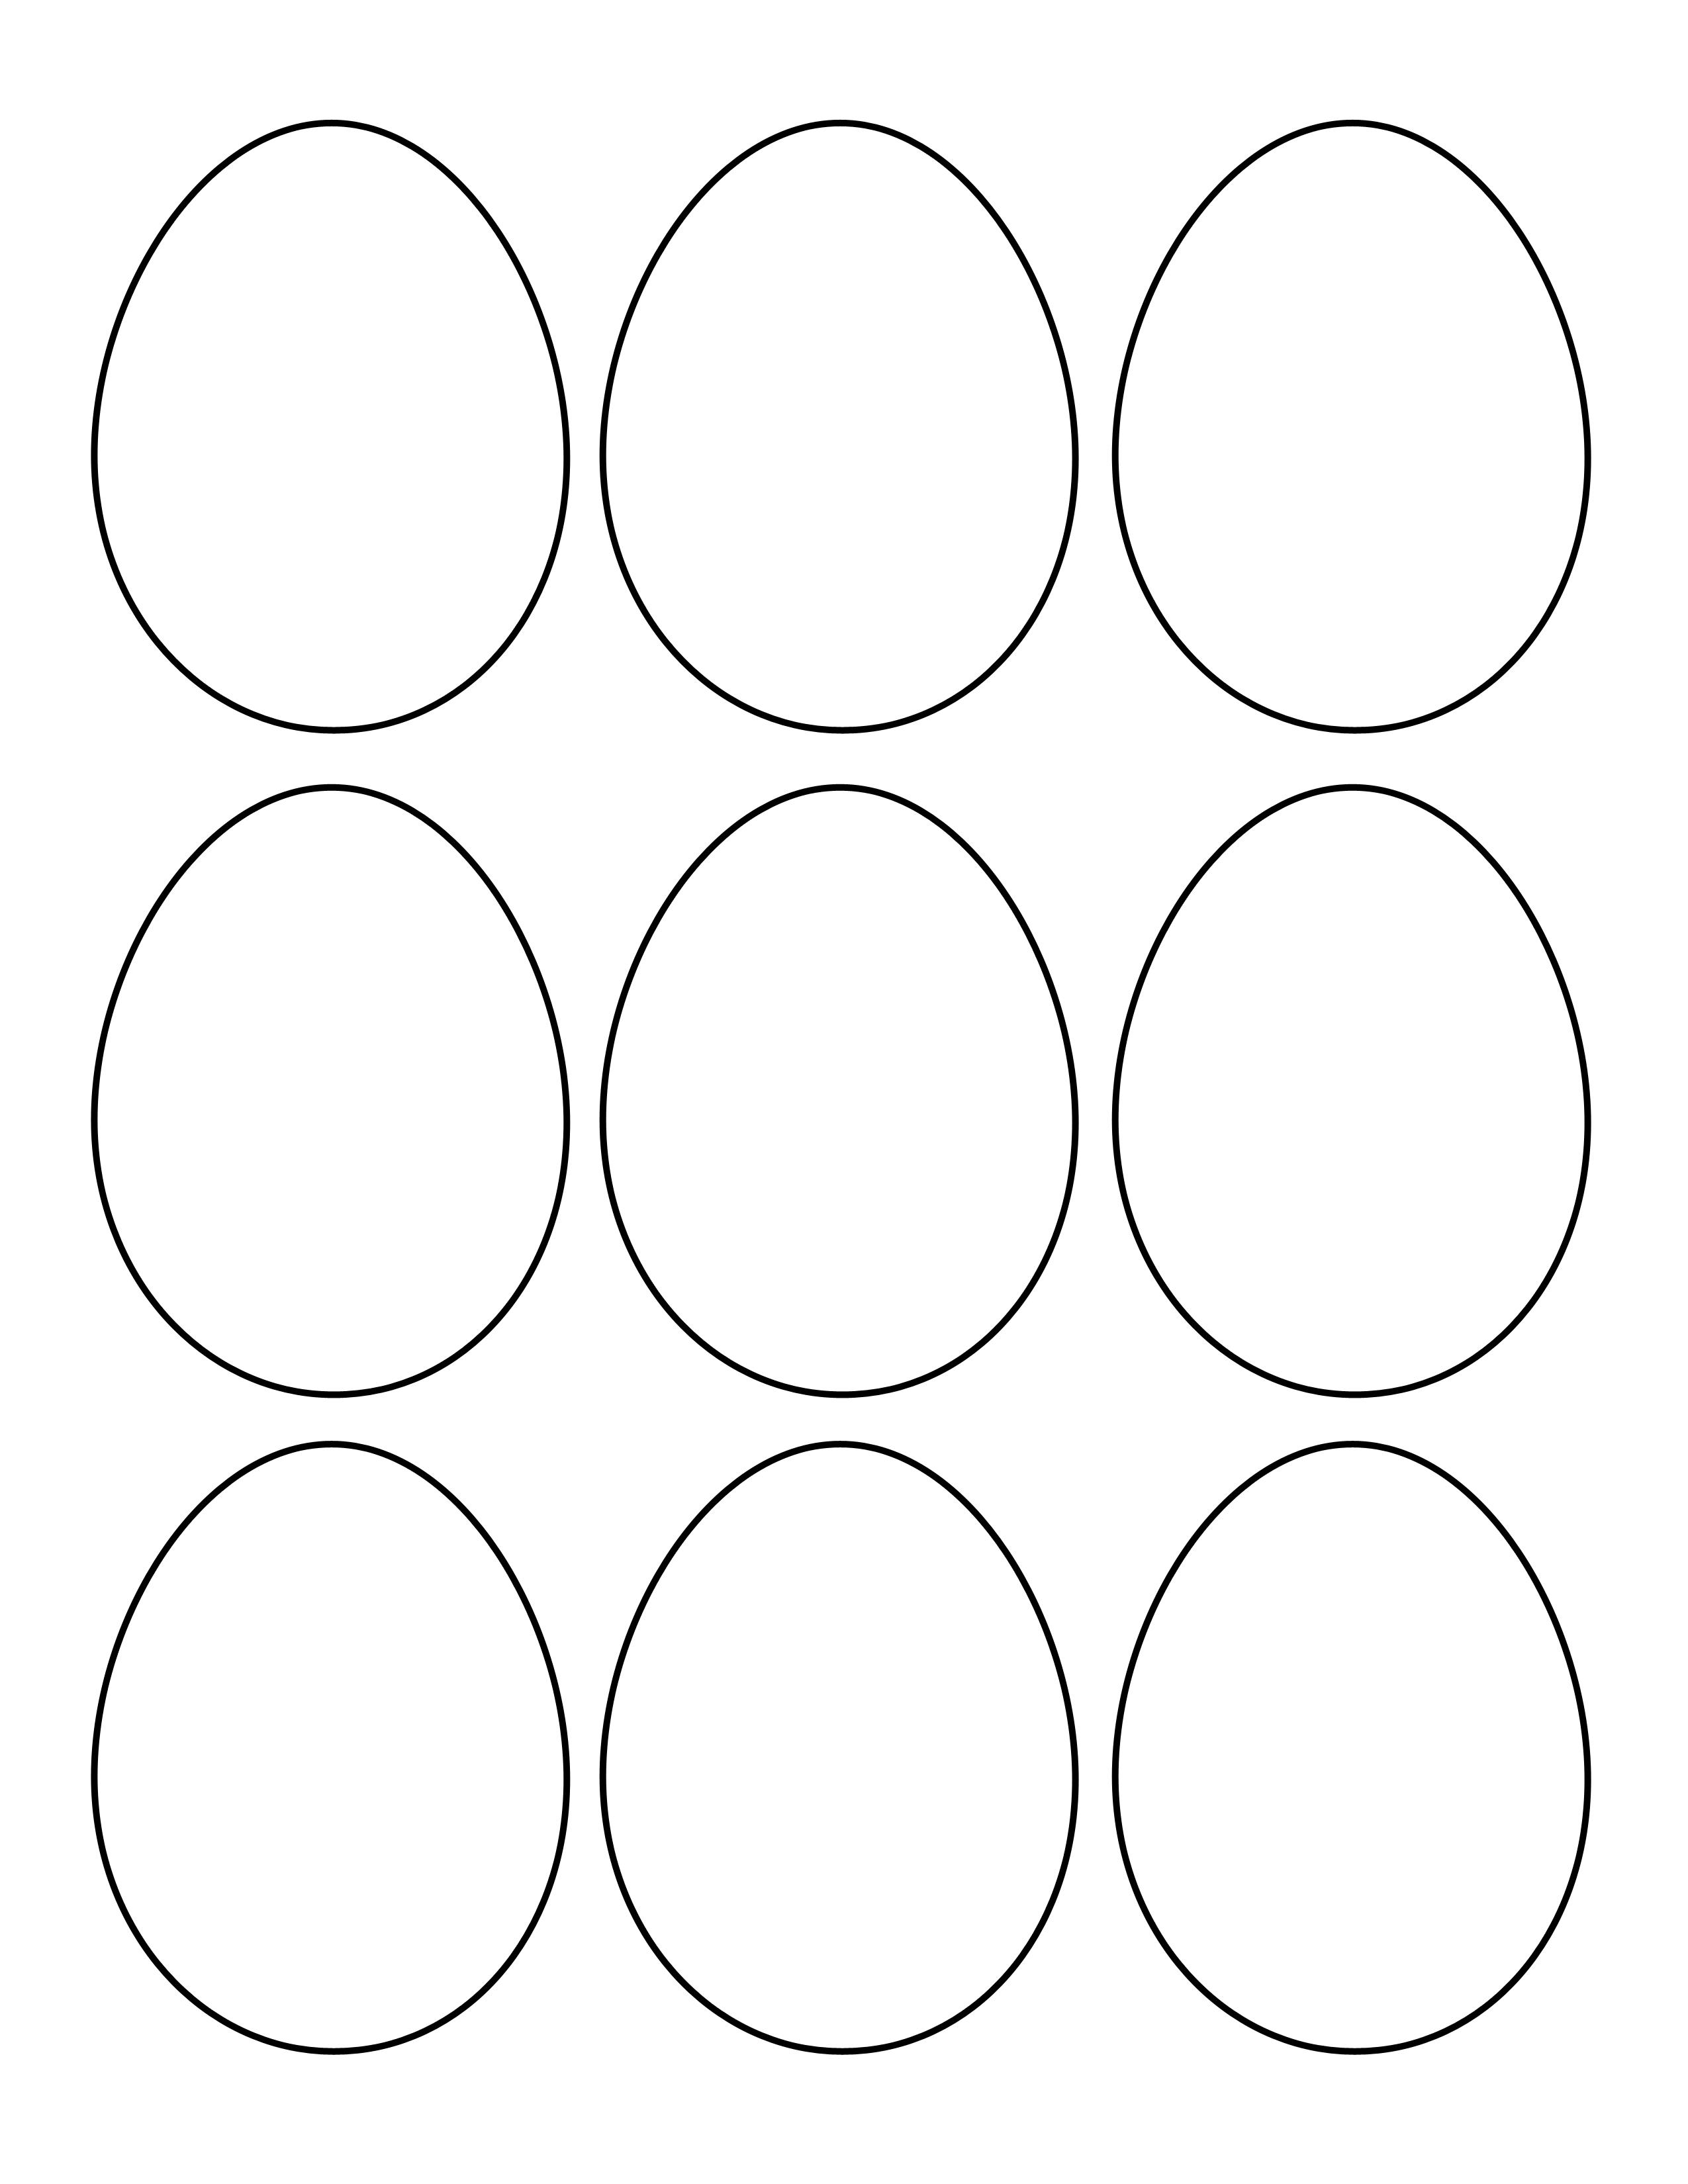 Free Printable Easter Egg Templates – Hd Easter Images - Easter Egg Template Free Printable